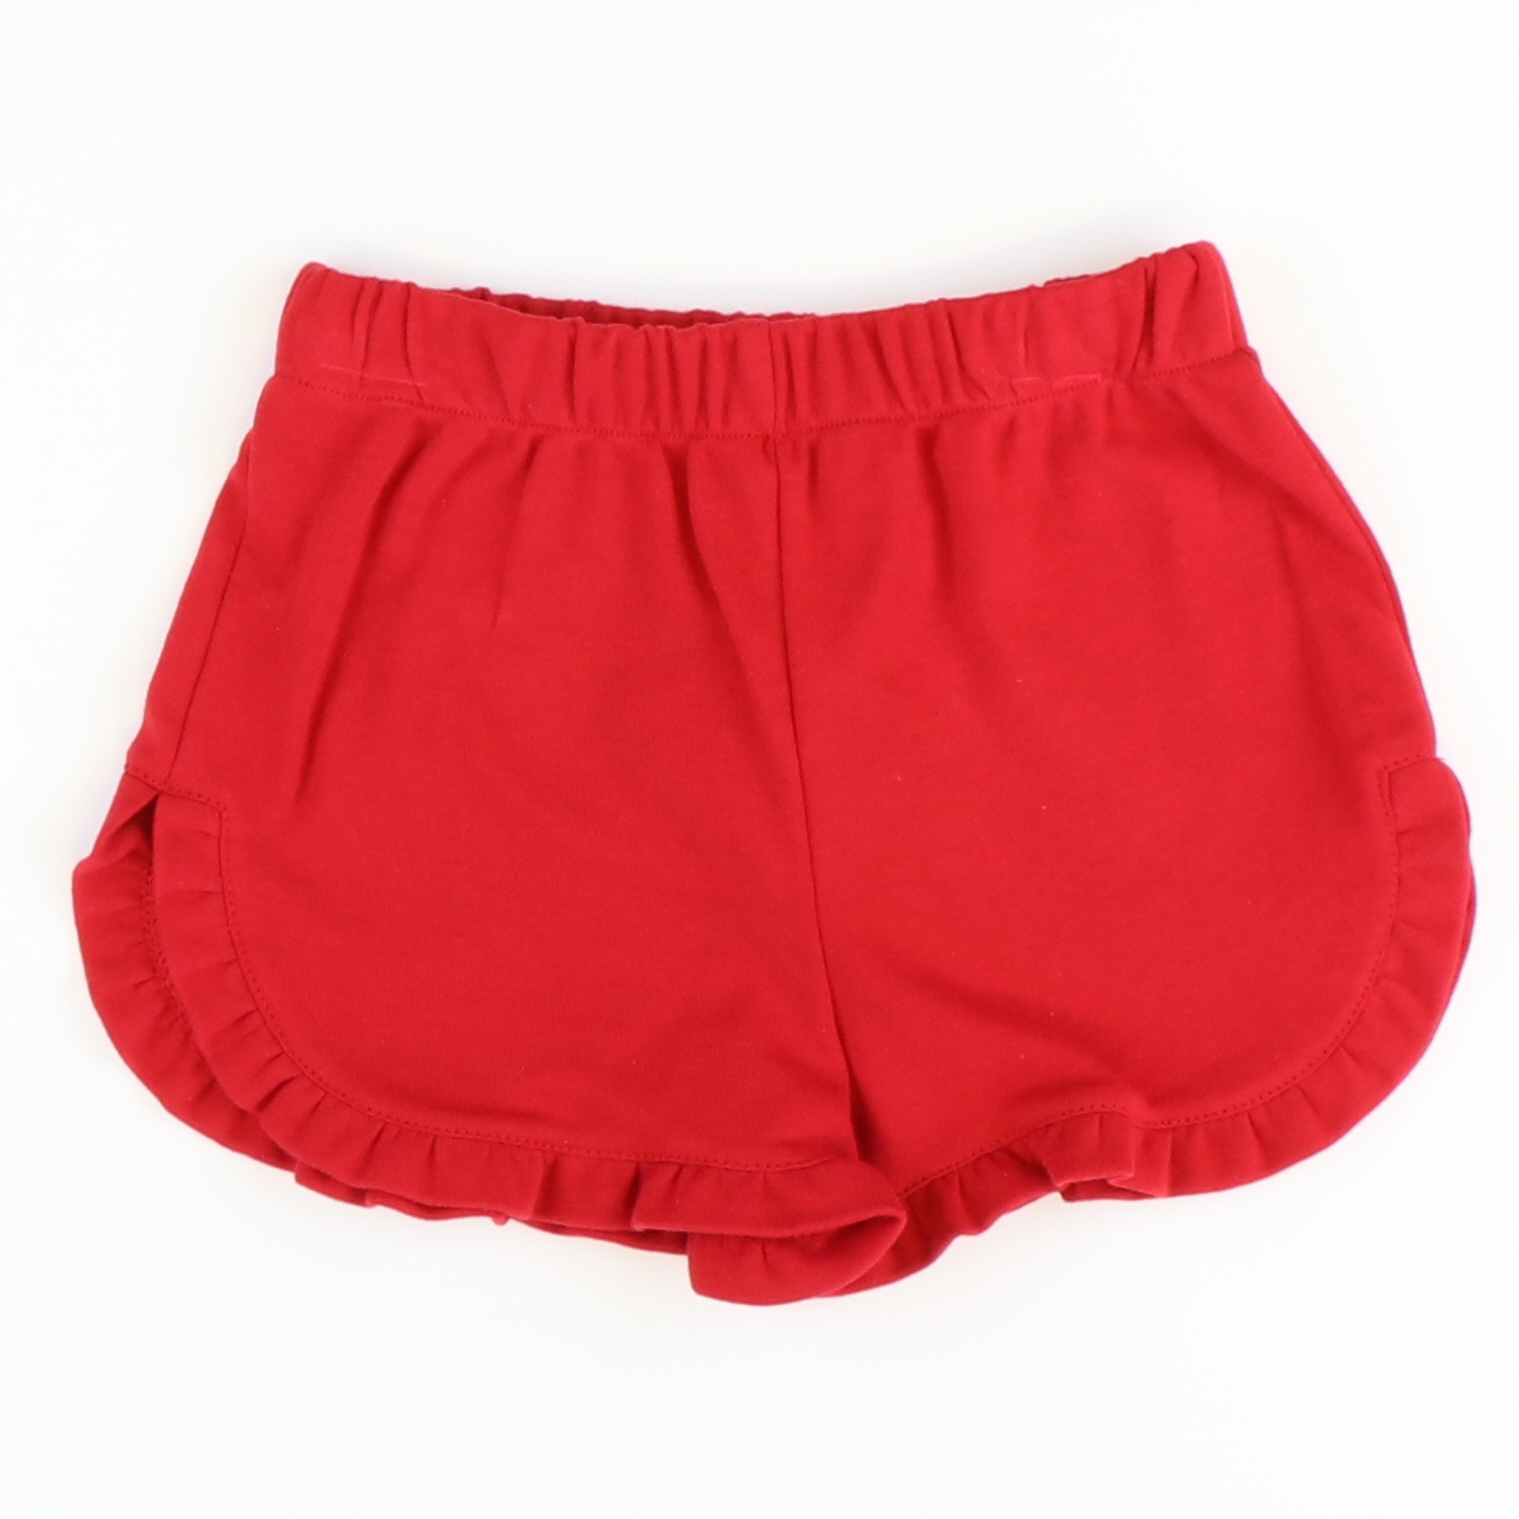 Ruffle Shorts - Red Knit - Stellybelly ?id=28092676210767